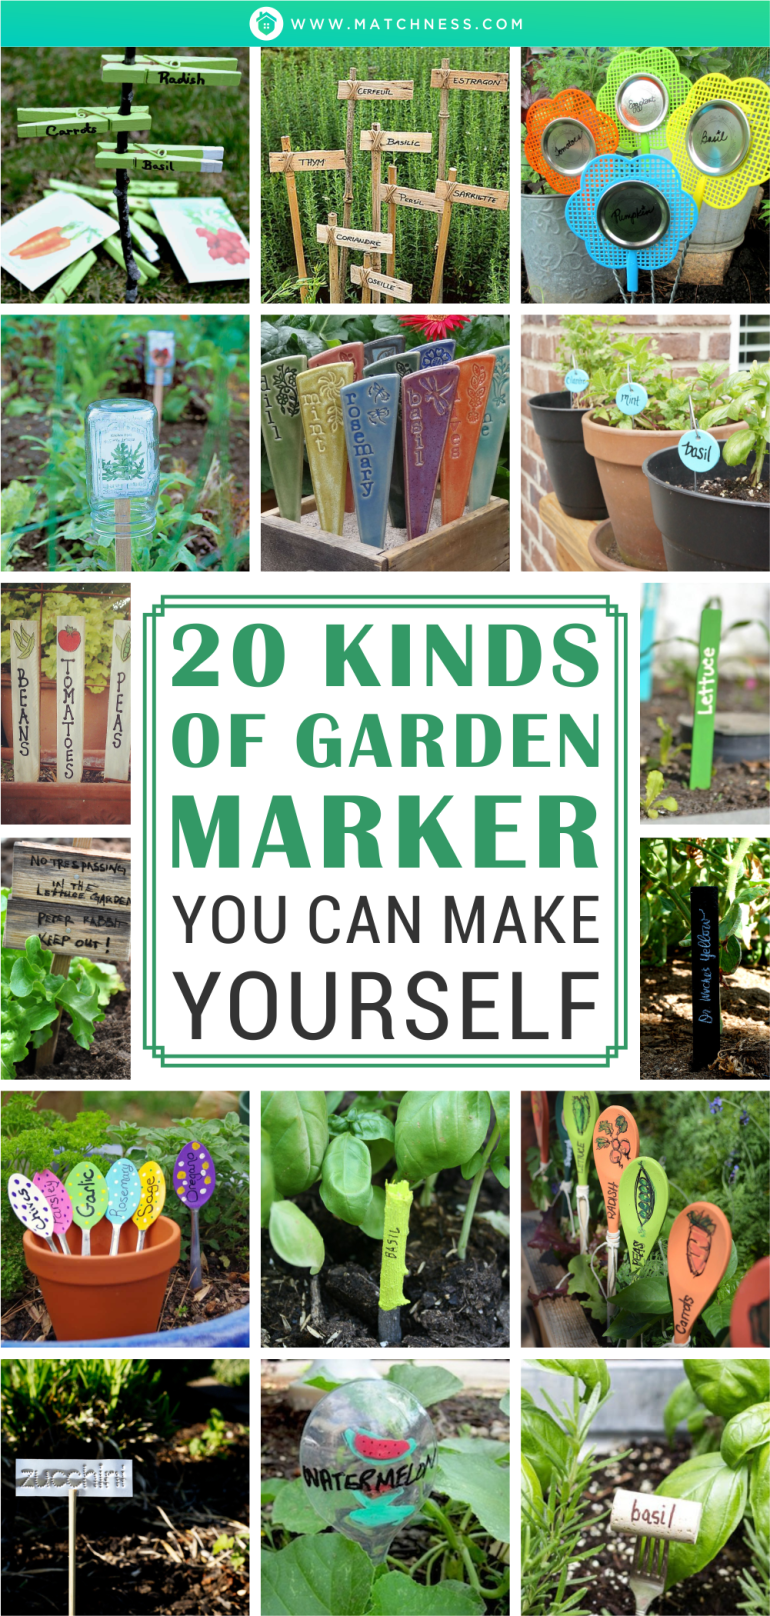 20-kinds-of-garden-marker-you-can-make-yourself1